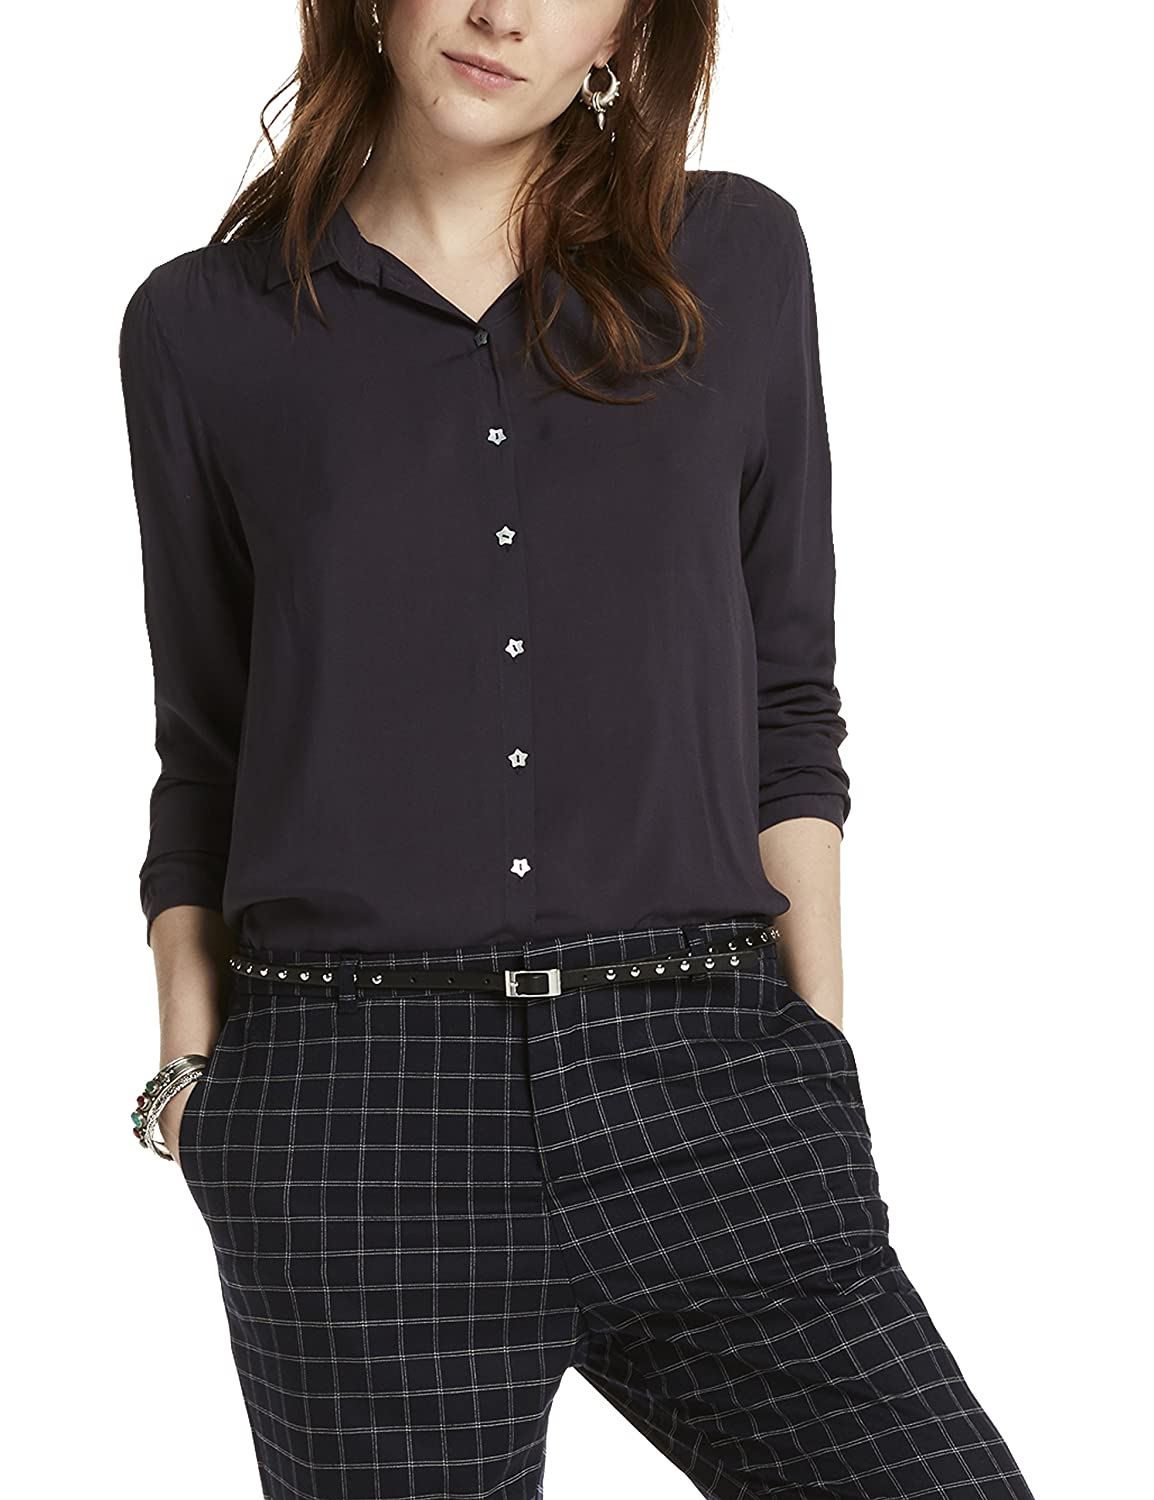 Maison Scotch Damen Hemd Soft Viscose Shirt with Star Buttons